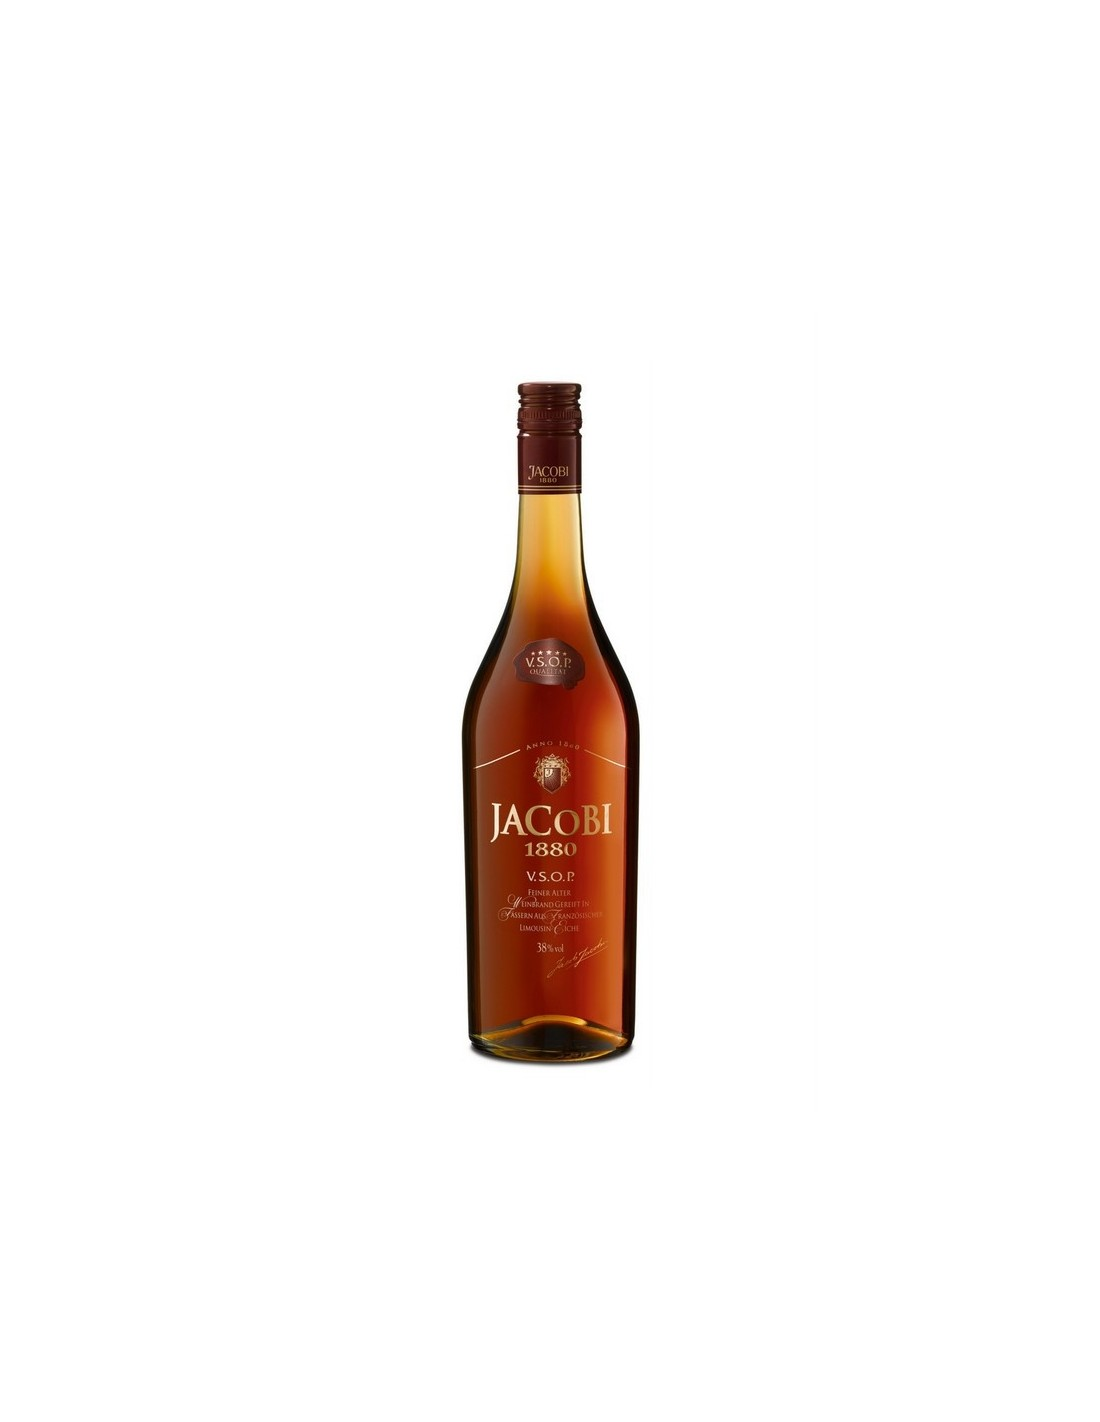 Brandy Jacobi 1880 VSOP, 38% alc., 0.7L, Germania